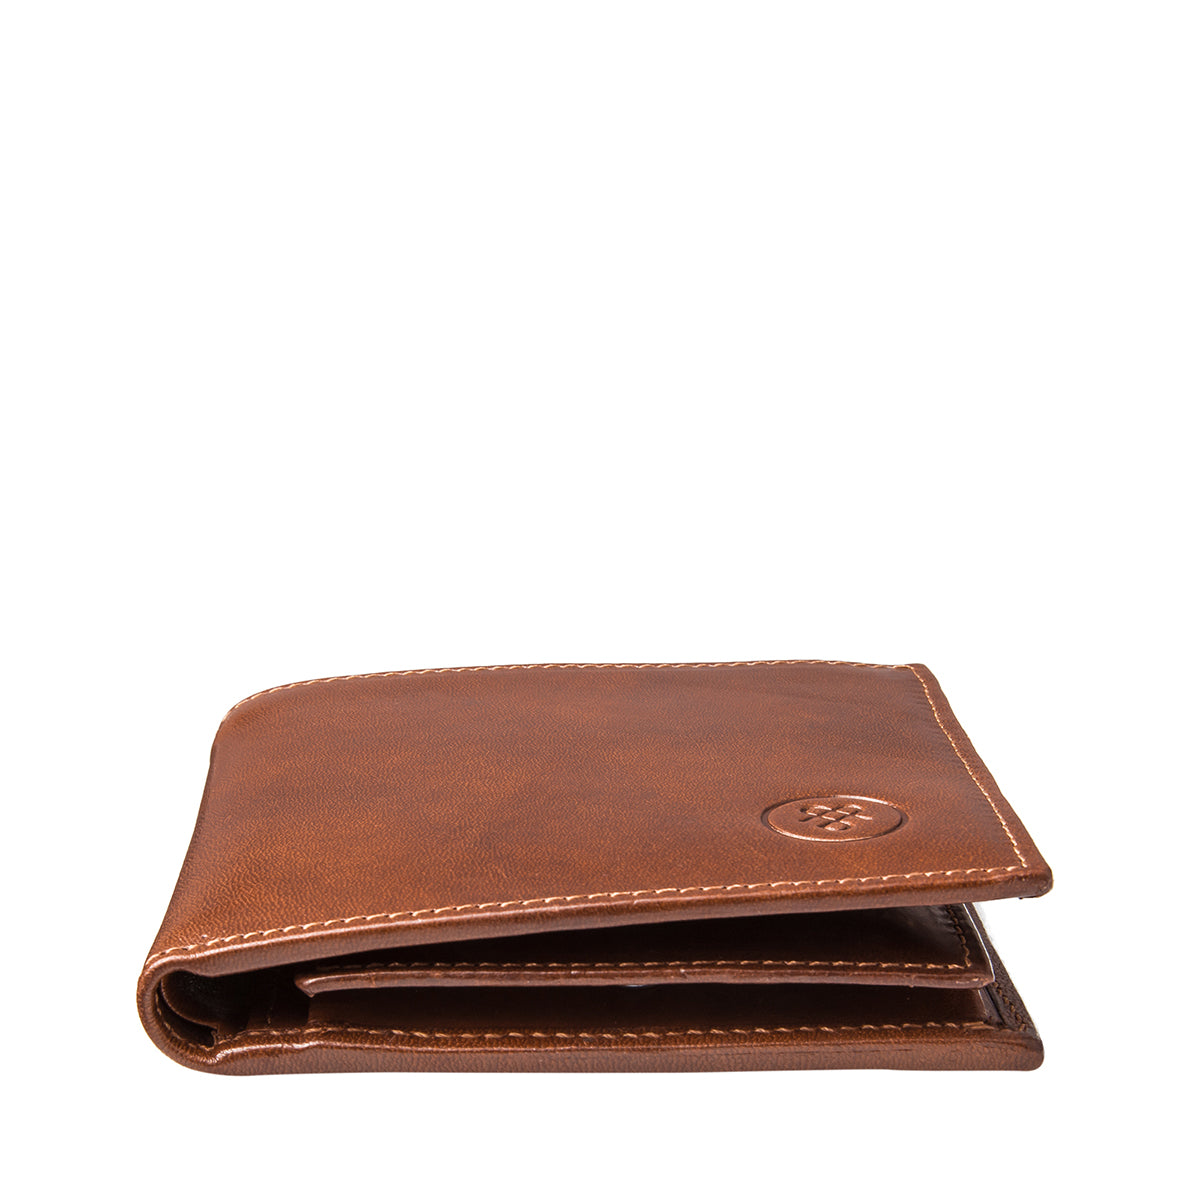 Image 6 of the 'Ticciano' Chestnut Veg-Tanned Leather Wallet with Coin Pocket